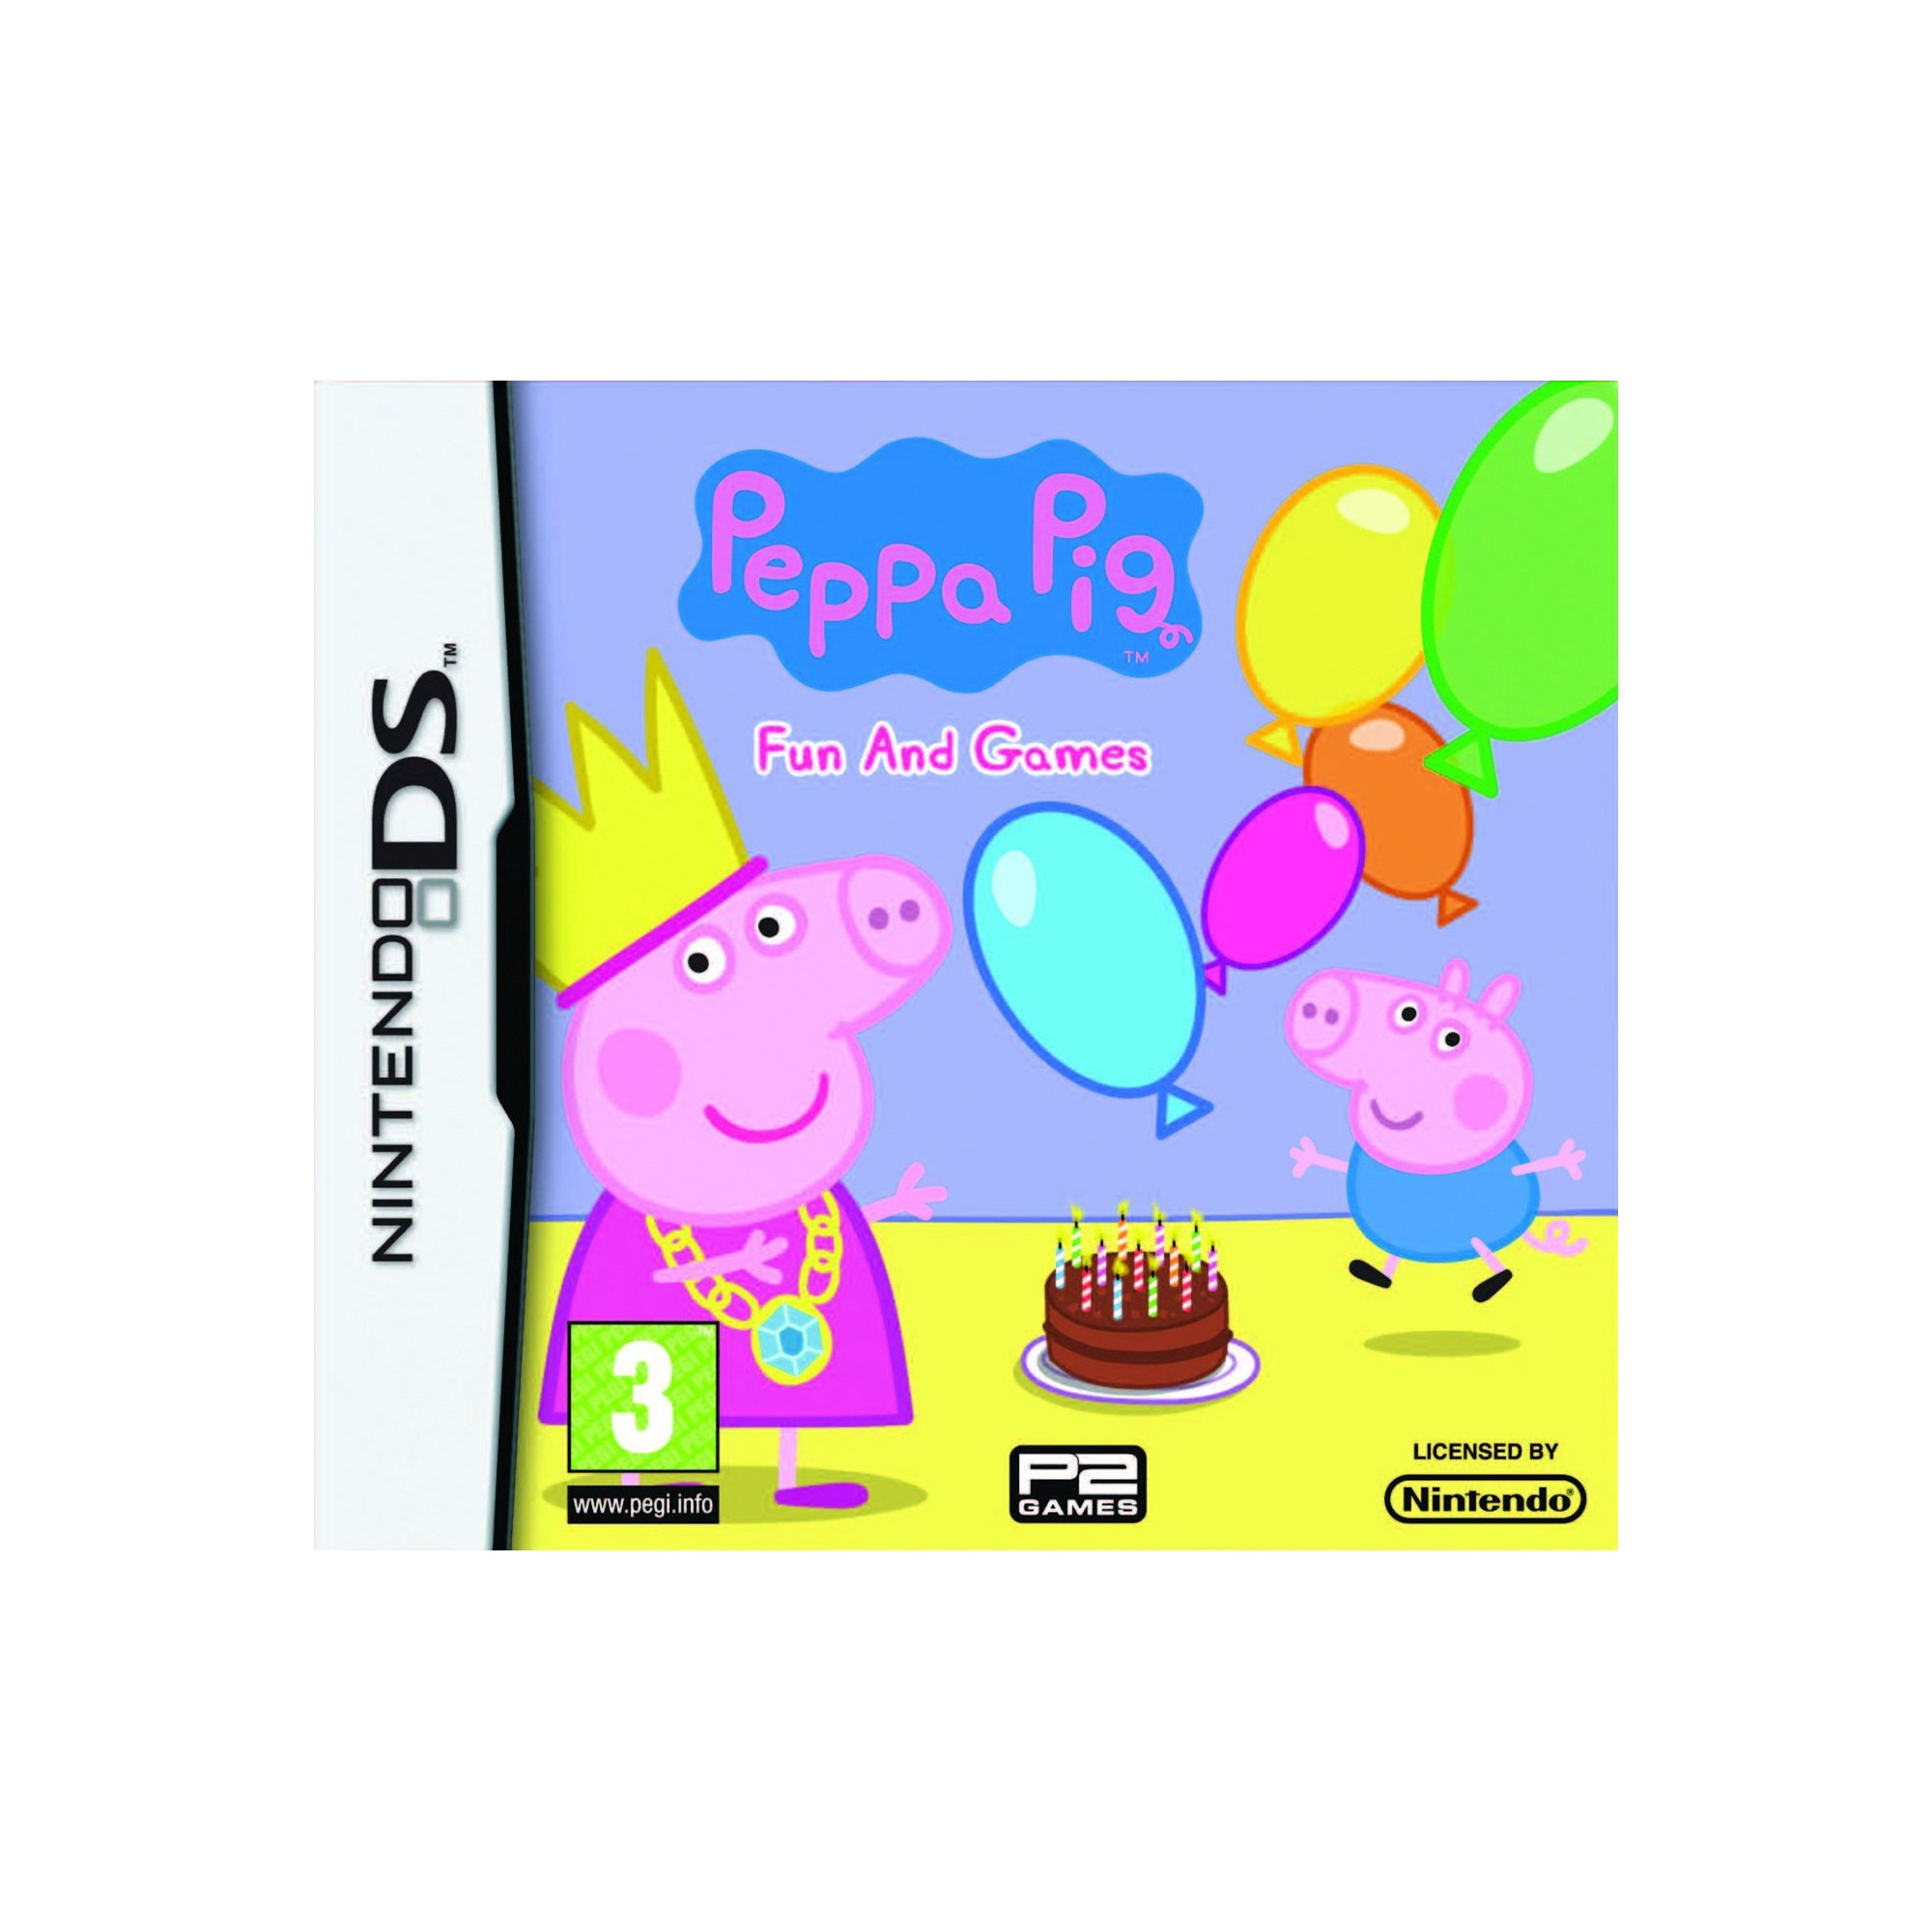 Pegga Pig 2 Fun And Games DS